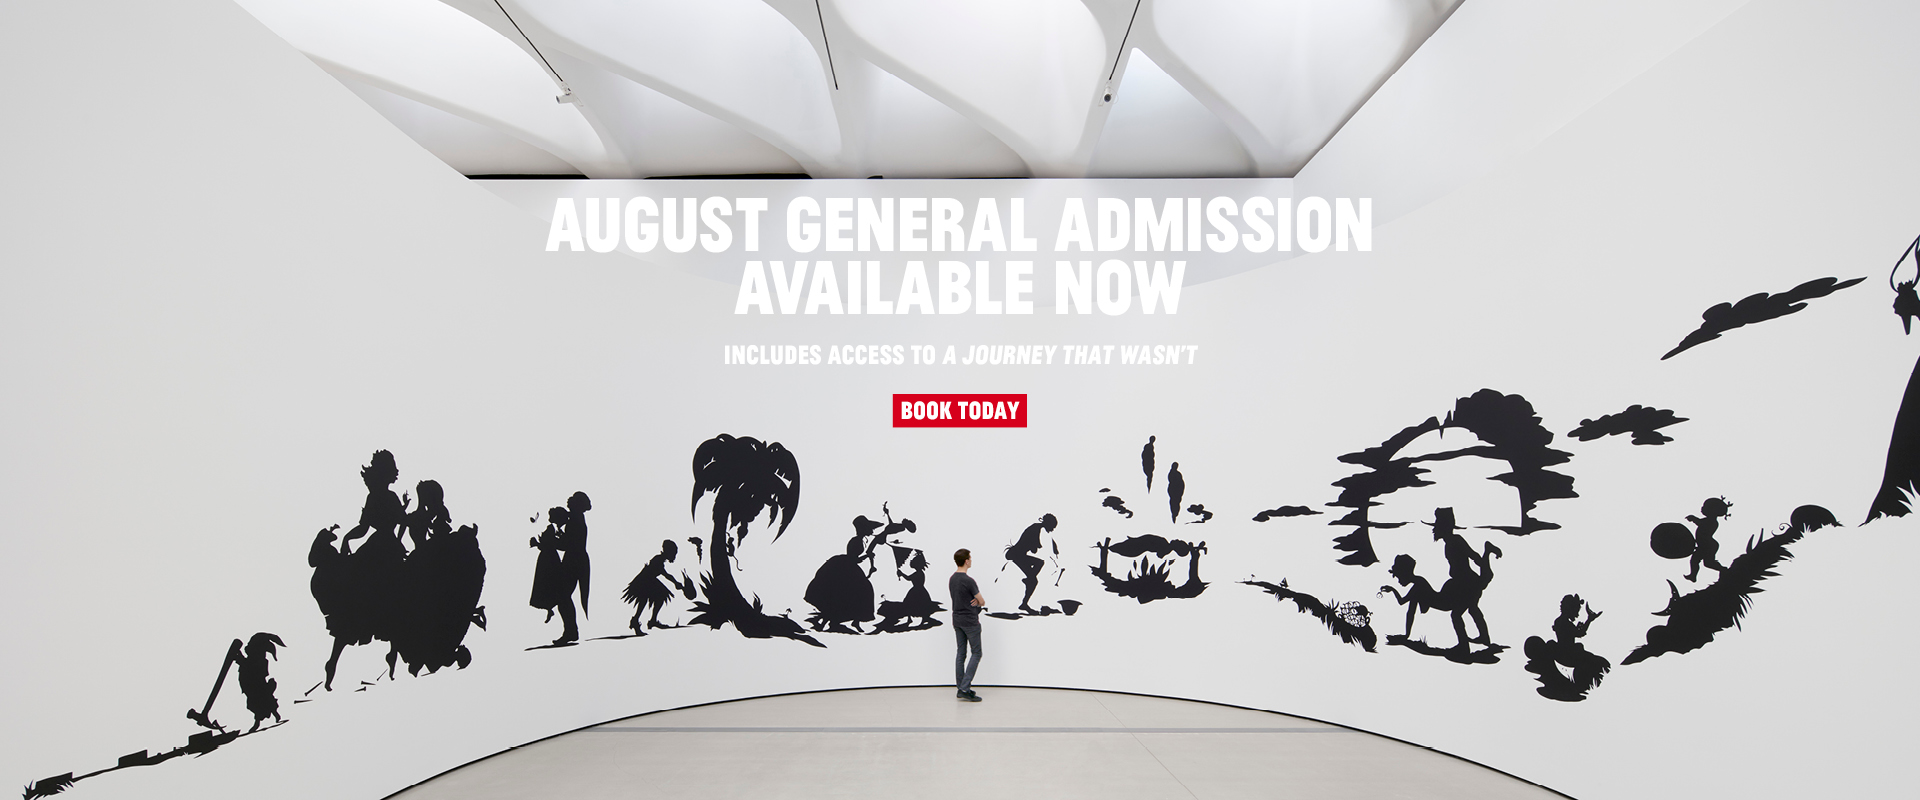 August general admission tickets are now available